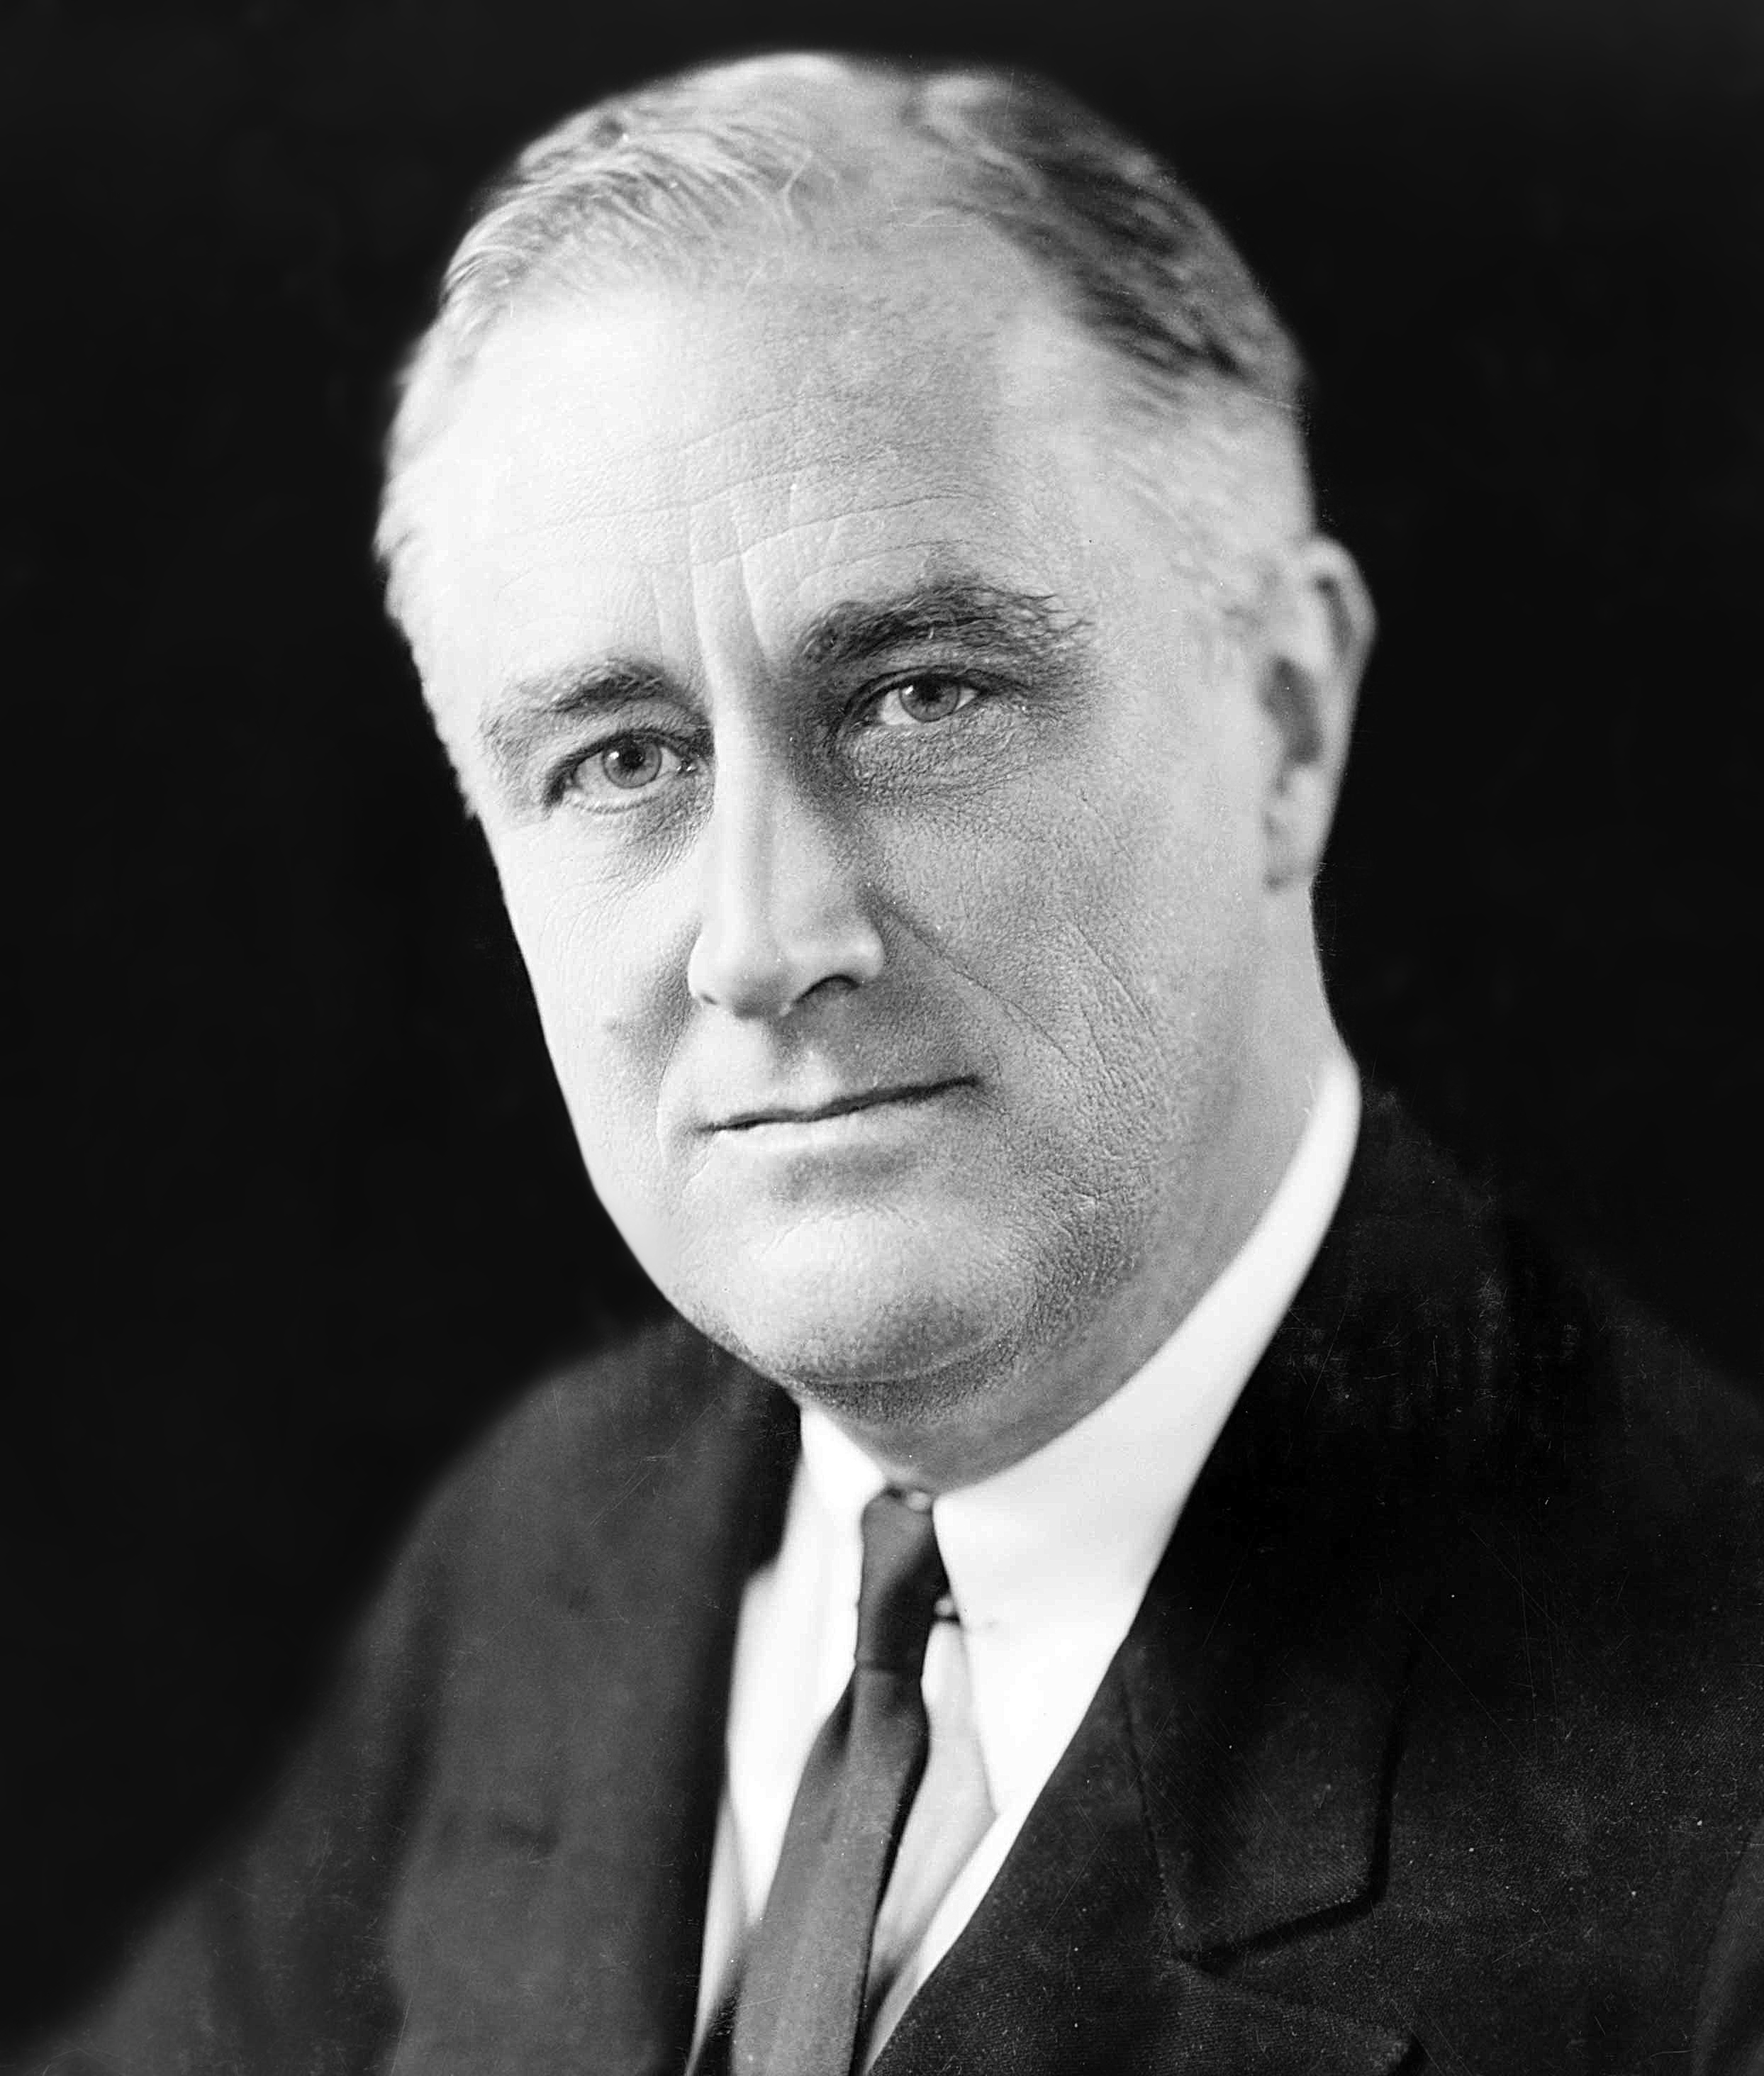 https://upload.wikimedia.org/wikipedia/commons/b/b8/FDR_in_1933.jpg